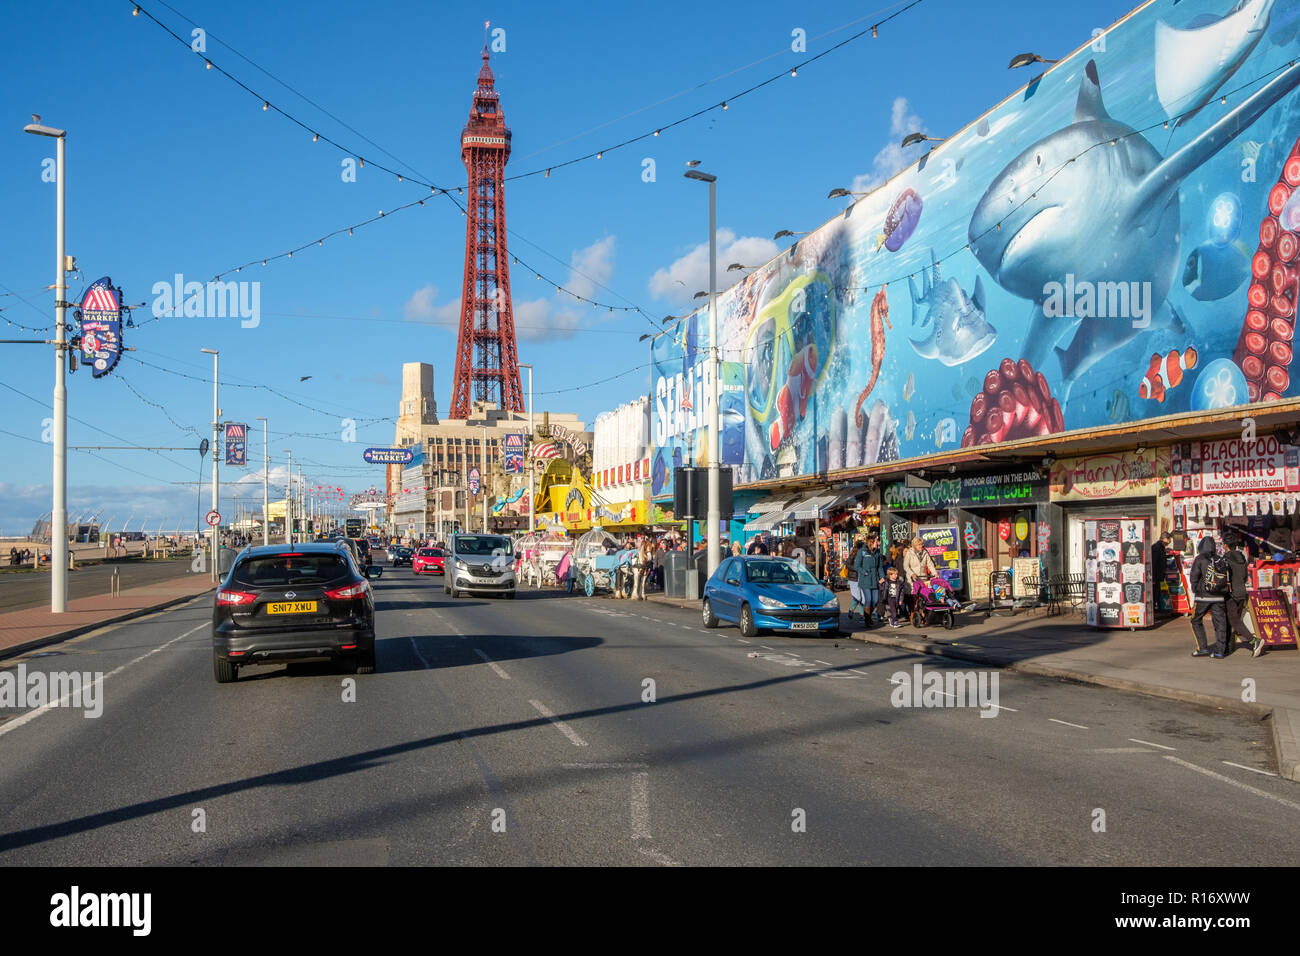 Blackpool promenade during an autumn weekend. Blackpool is one of Englands favorite seaside resorts. Stock Photo